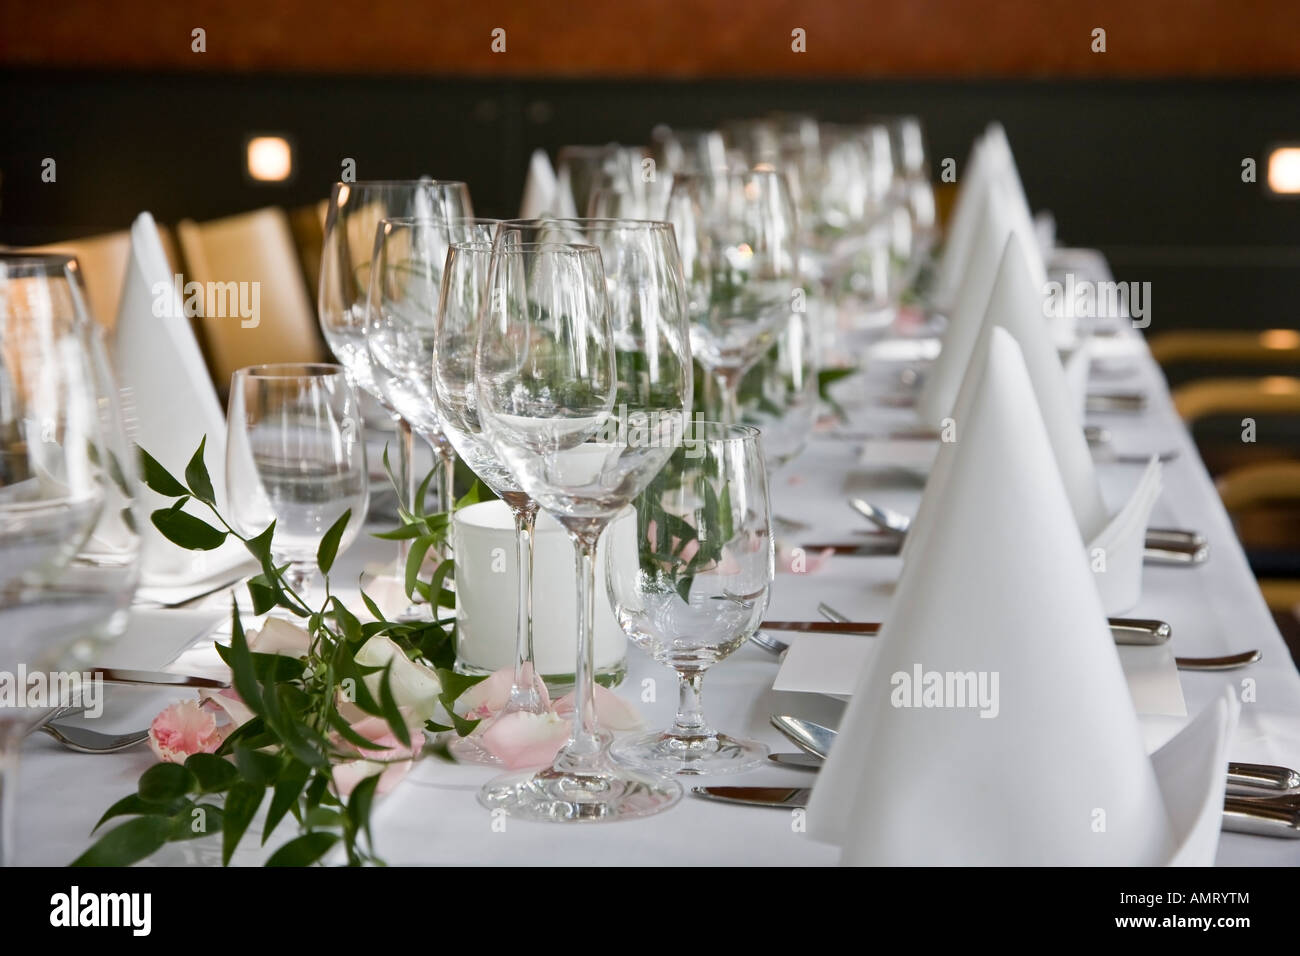 Well-laid table with white folded serviettes and wine glasses. - Stock Image